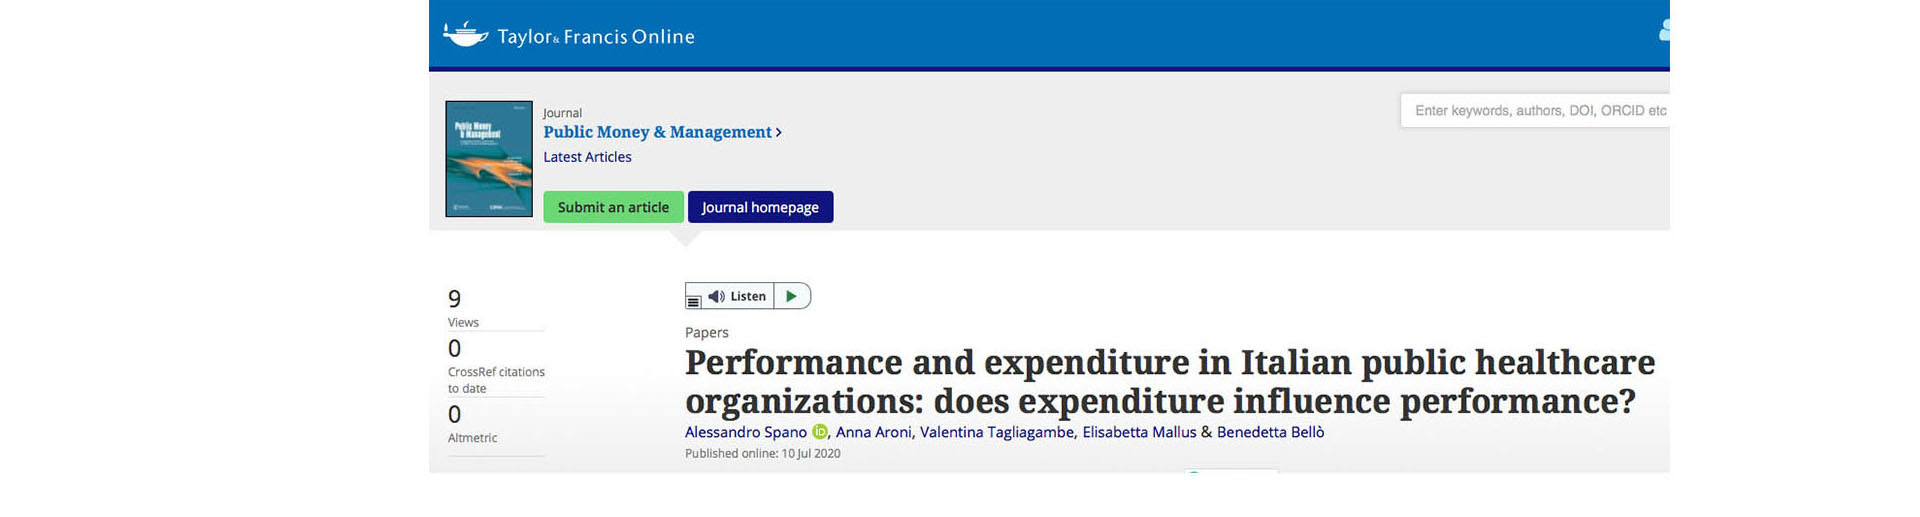 Performance and expenditure in Italian public healthcare organizations: does expenditure influence performance?